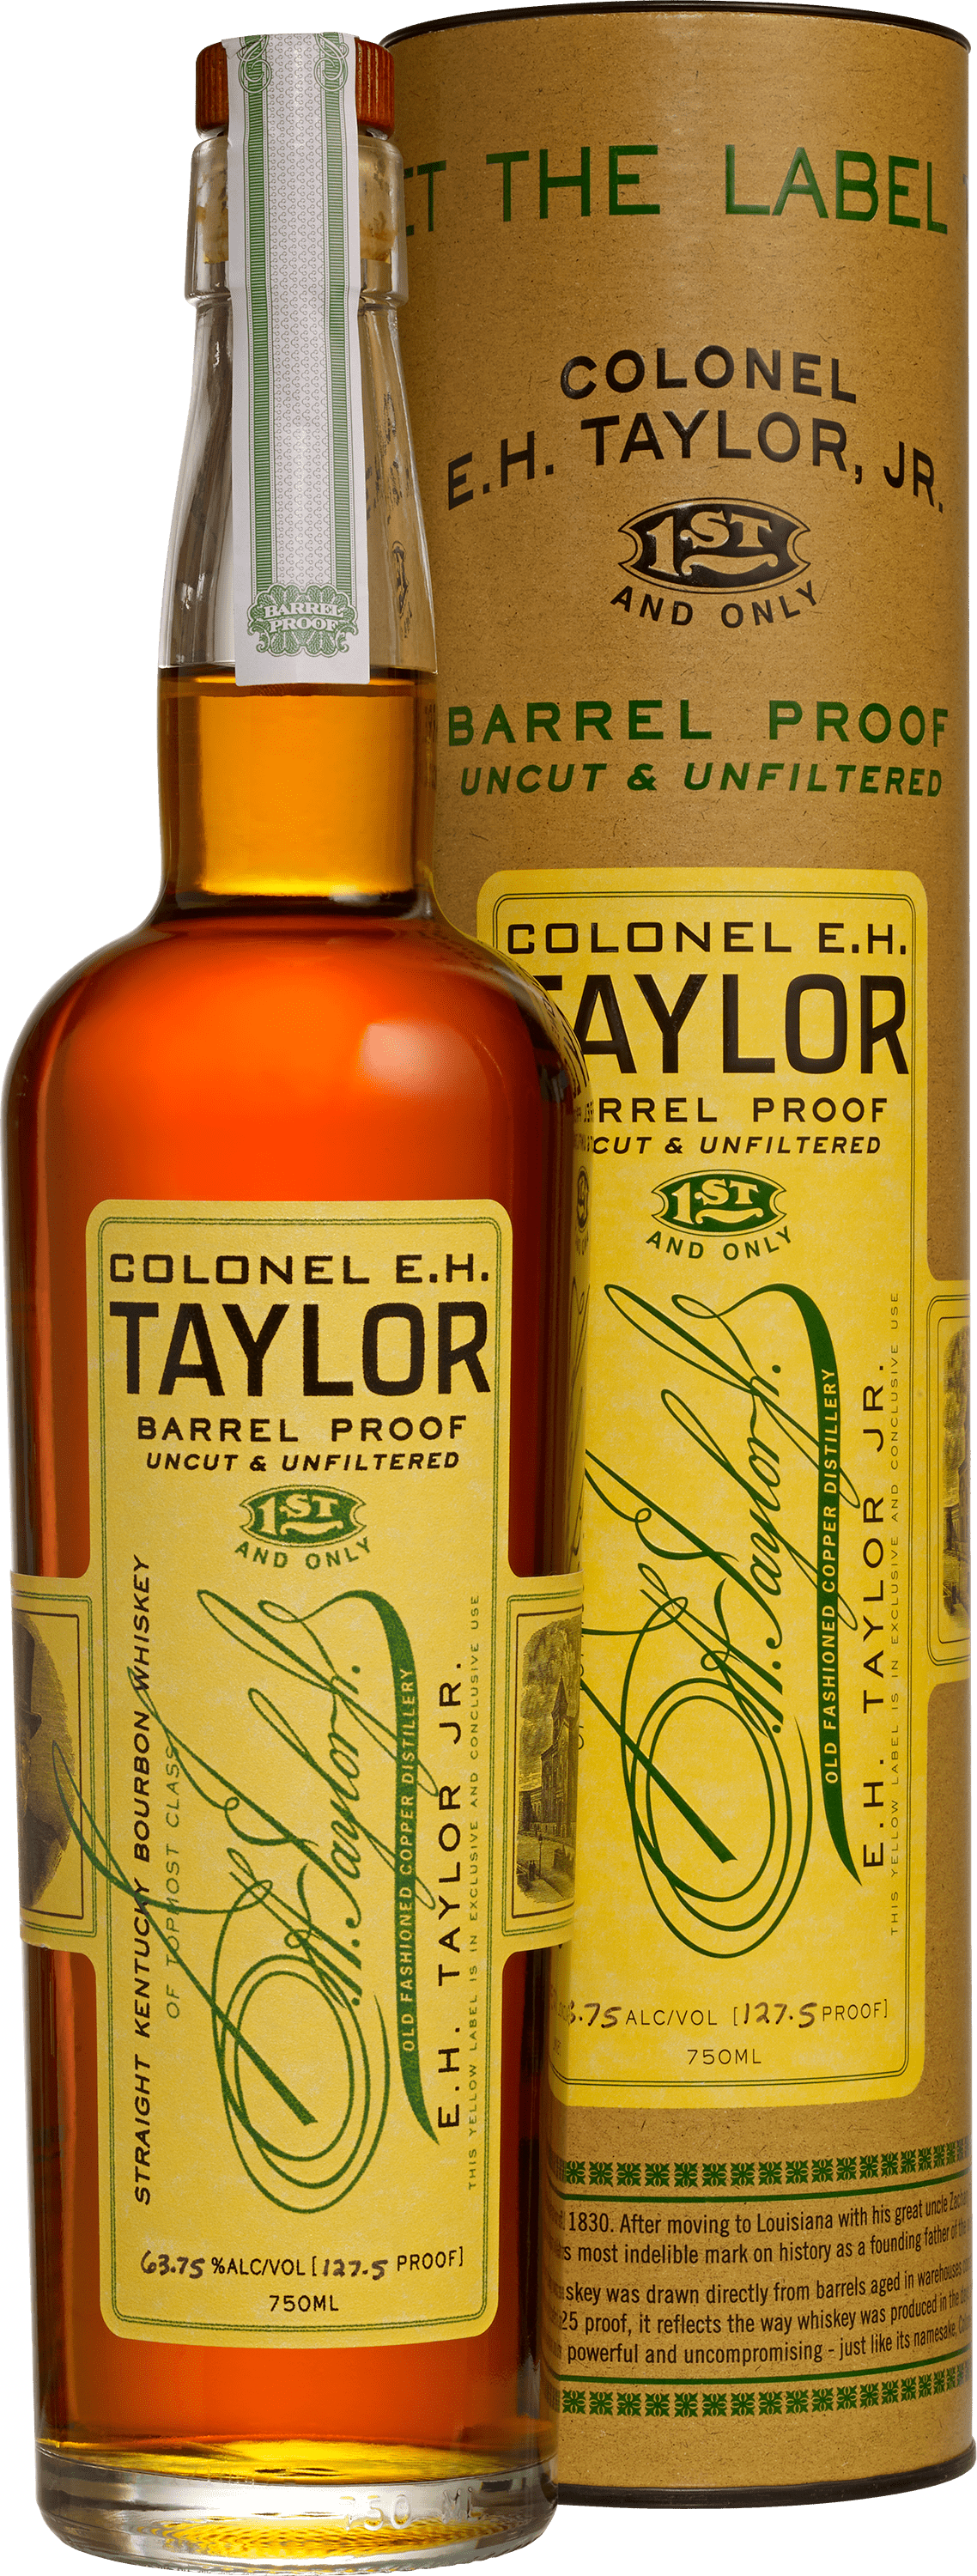 E.H. Taylor Barrel Proof